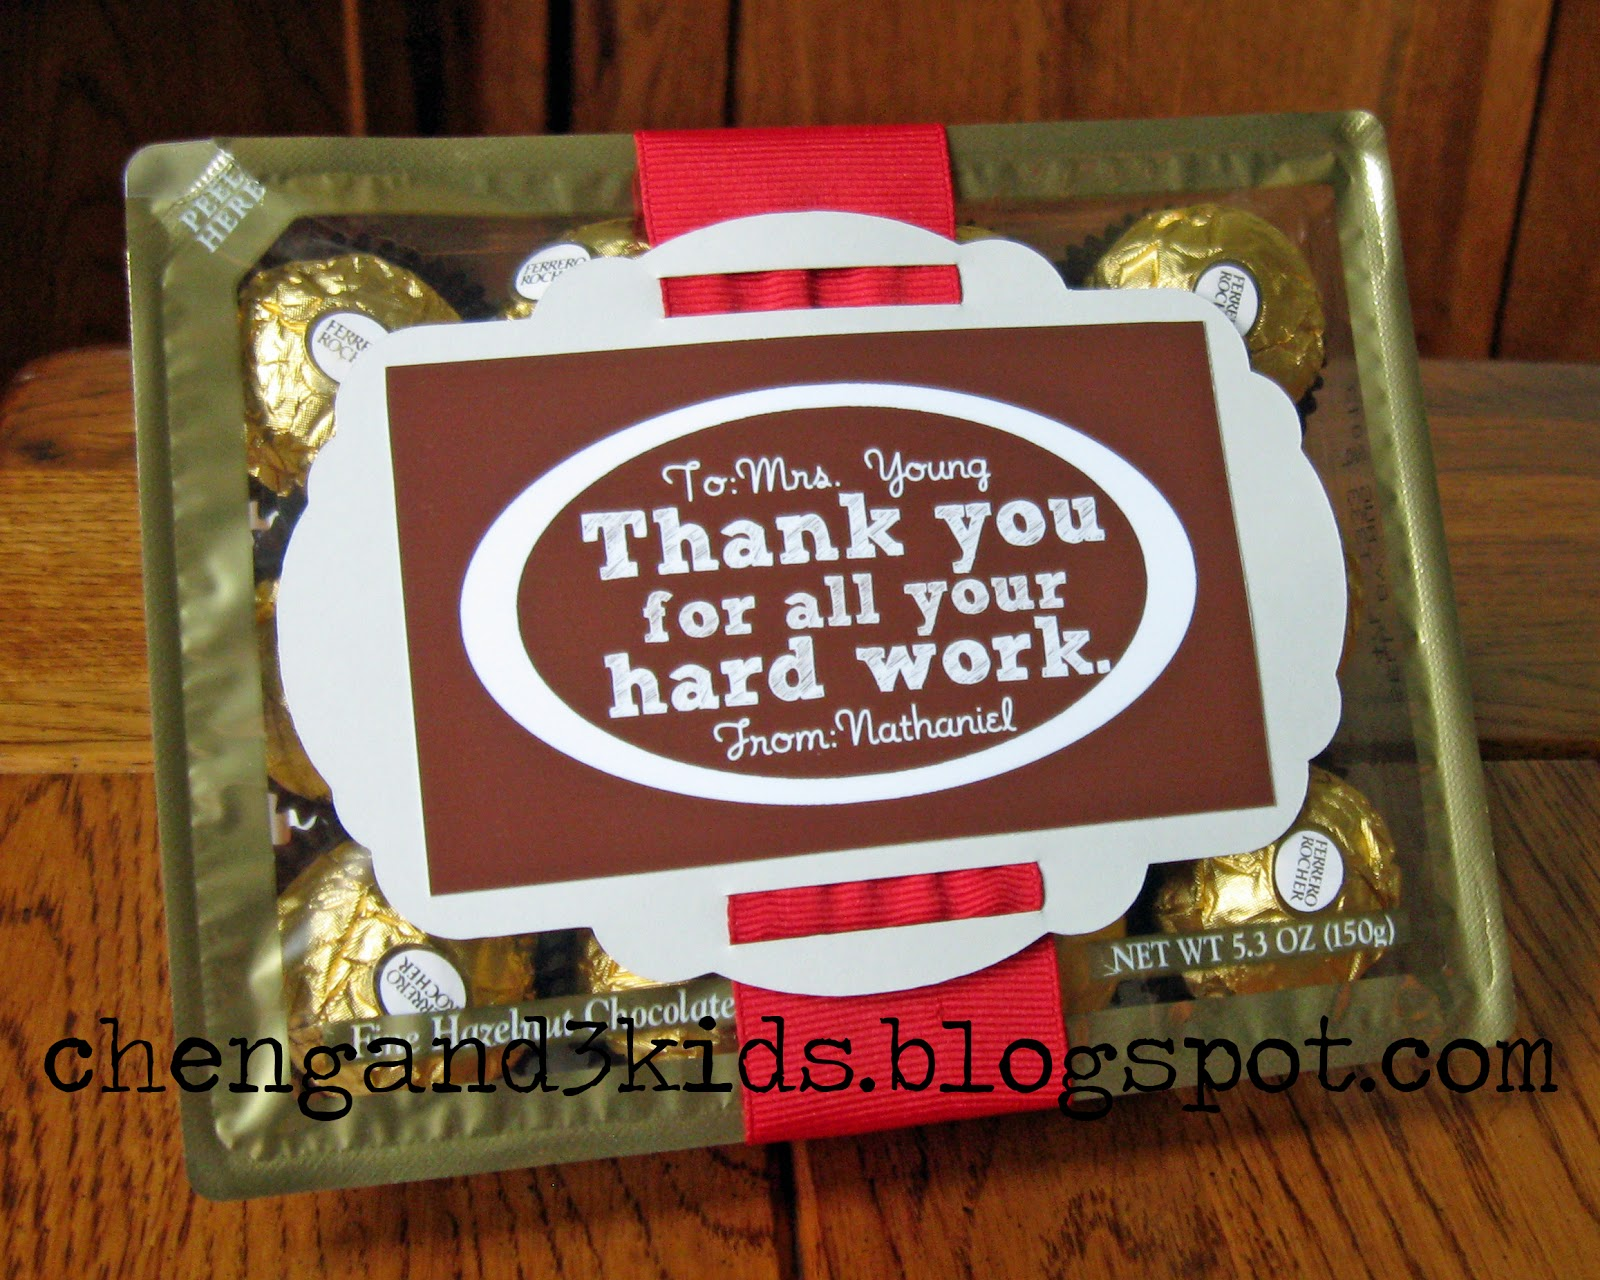 cheng and 3 kids nath s gift for teacher appreciation day this is our gift for my son s teacher for teacher appreciation day they are ferrero